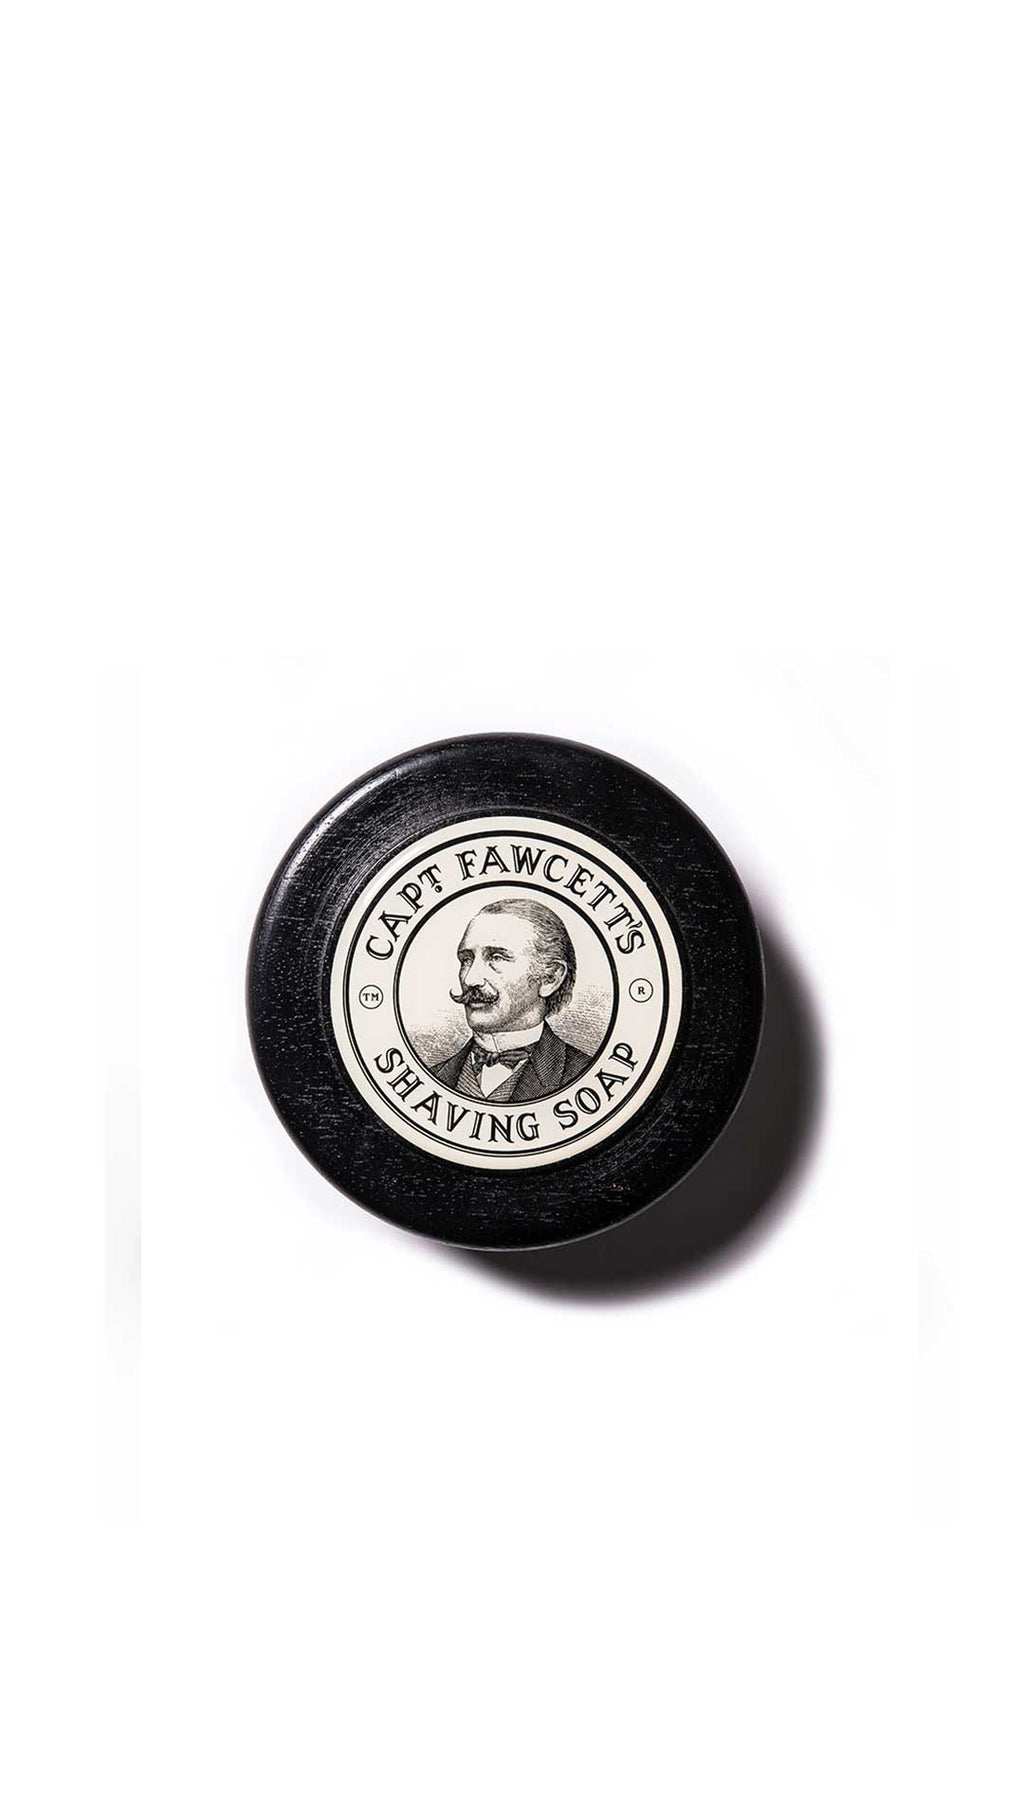 LUXURIOUS SHAVING SOAP - SAVON À RASER  - CAPTAIN FAWCETT